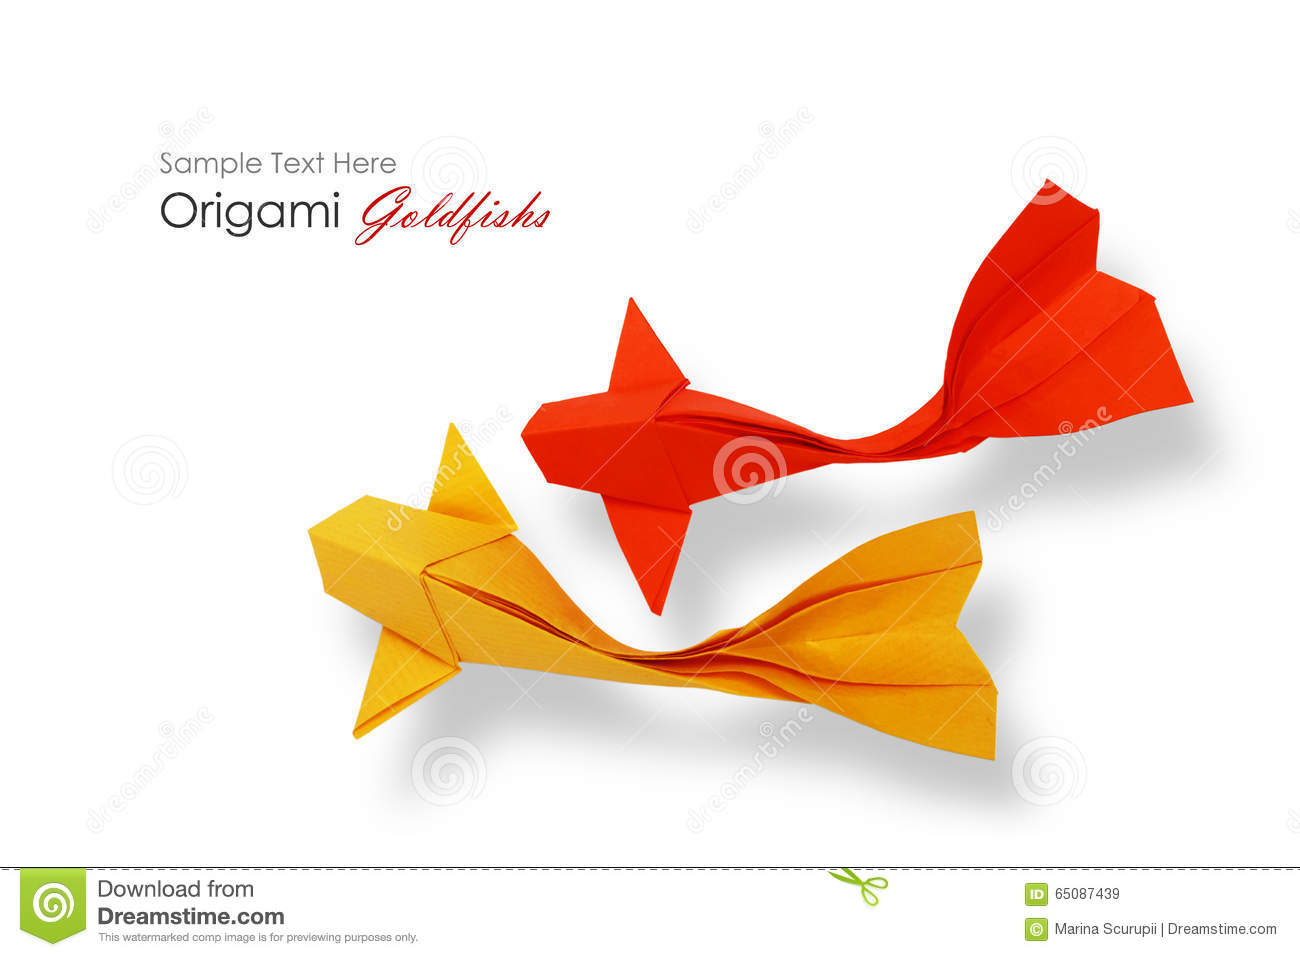 Origami Koi Fish Pattern